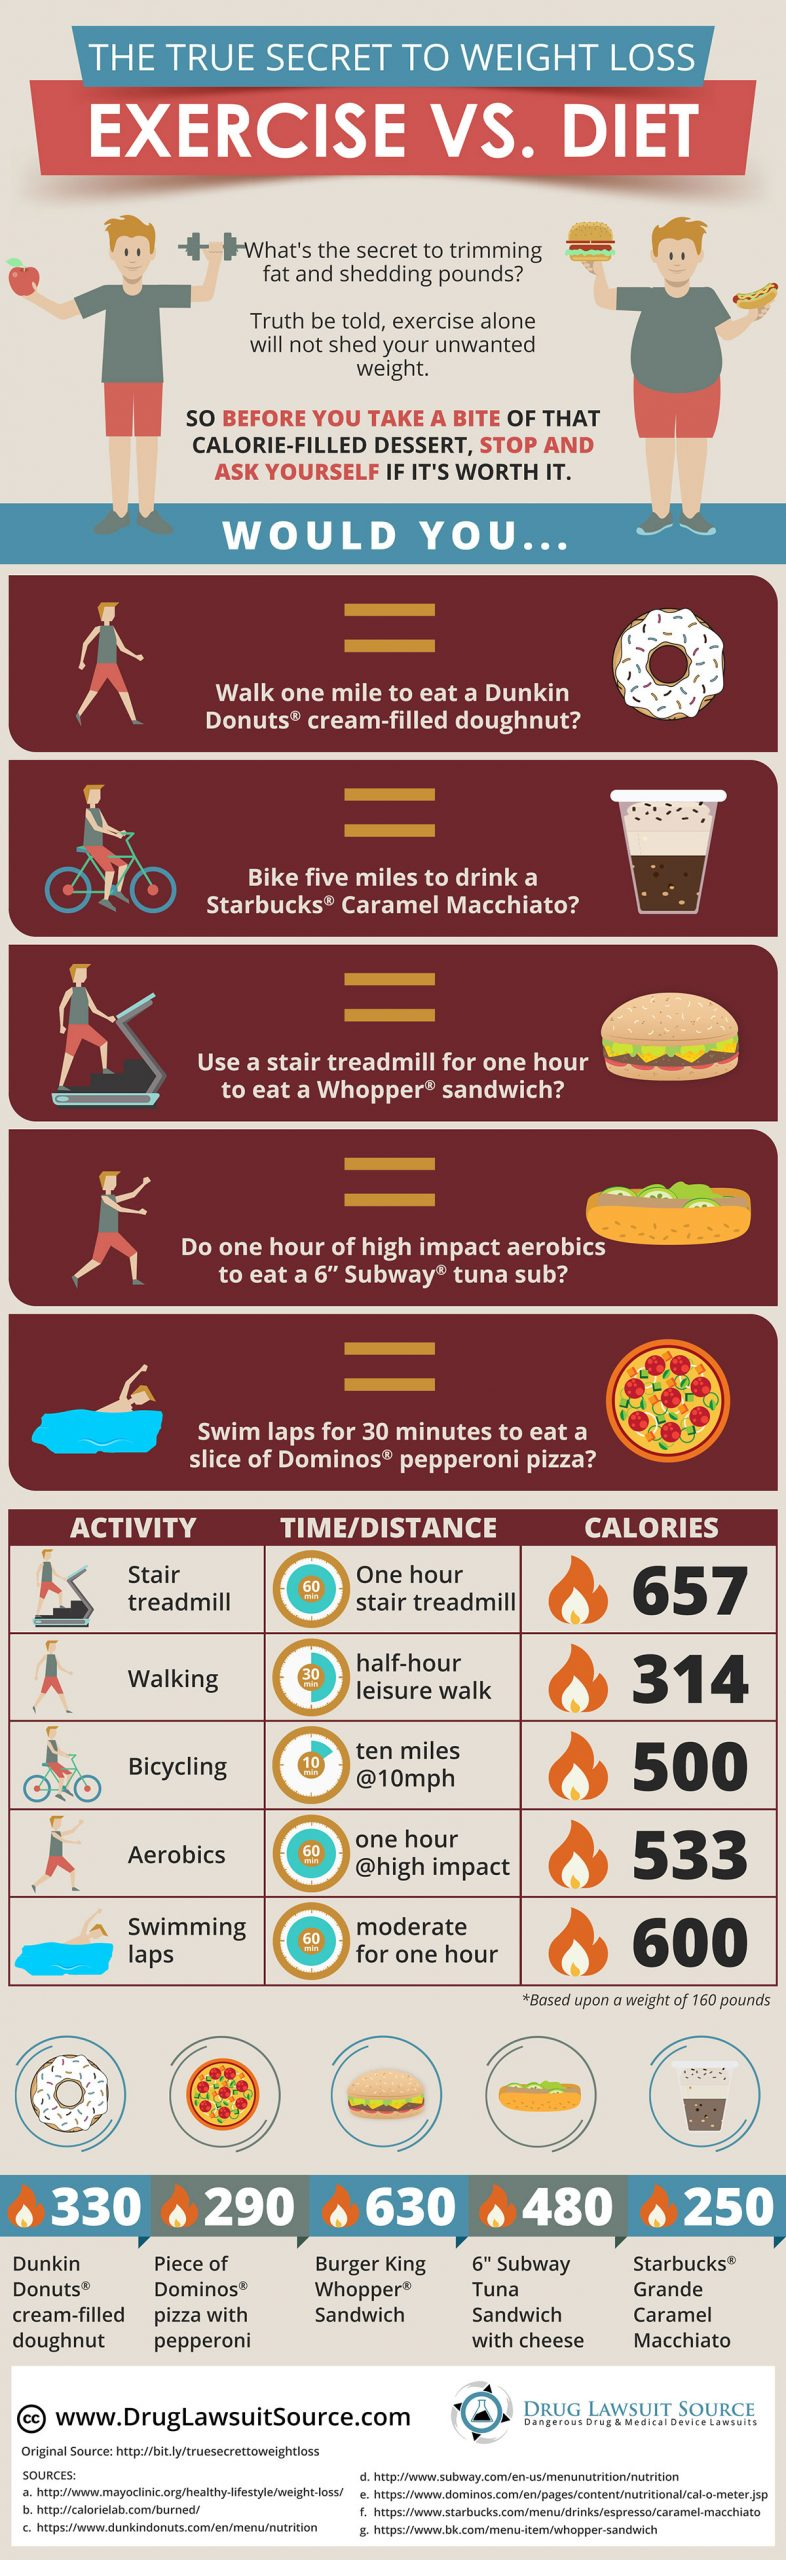 True Secret To Weight Loss Exercise vs Diet